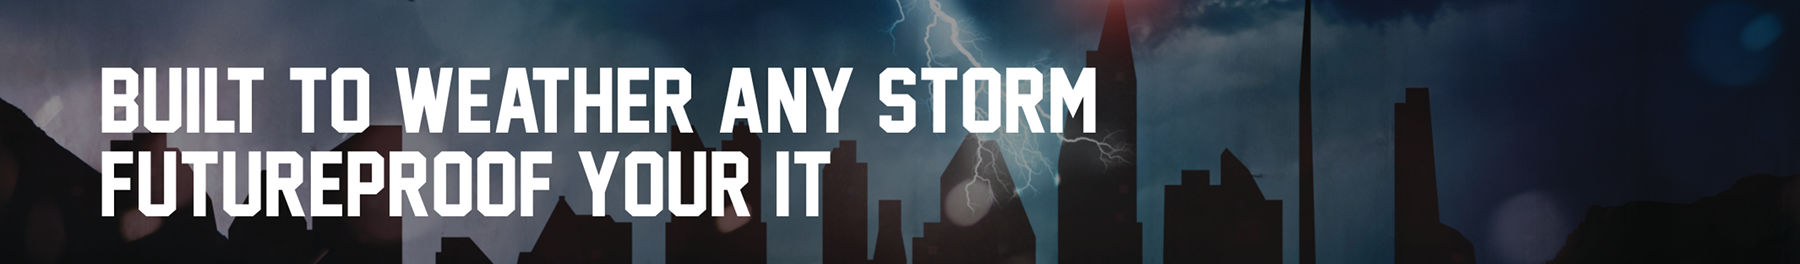 Built to weather any storm, futureproof your IT